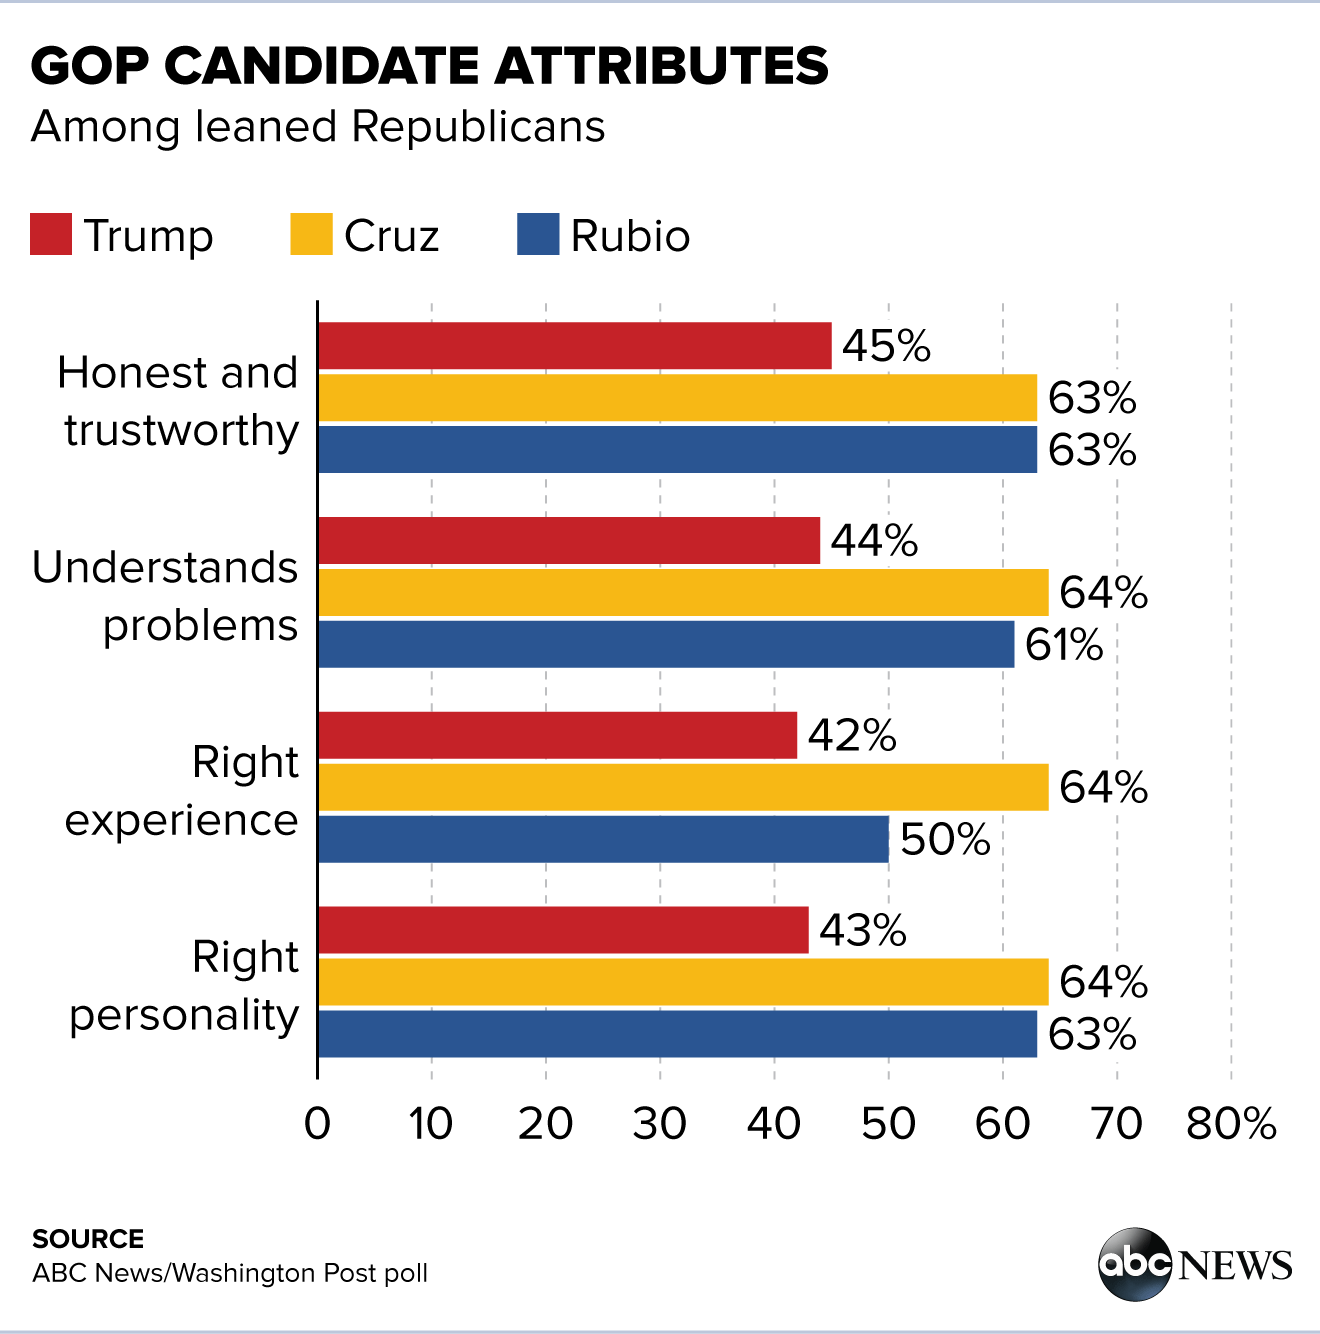 trump hits a wall in the gop his critics back a convention he trails cruz and rubio alike in all four personal attributes tested in this survey fewer than half of leaned republicans